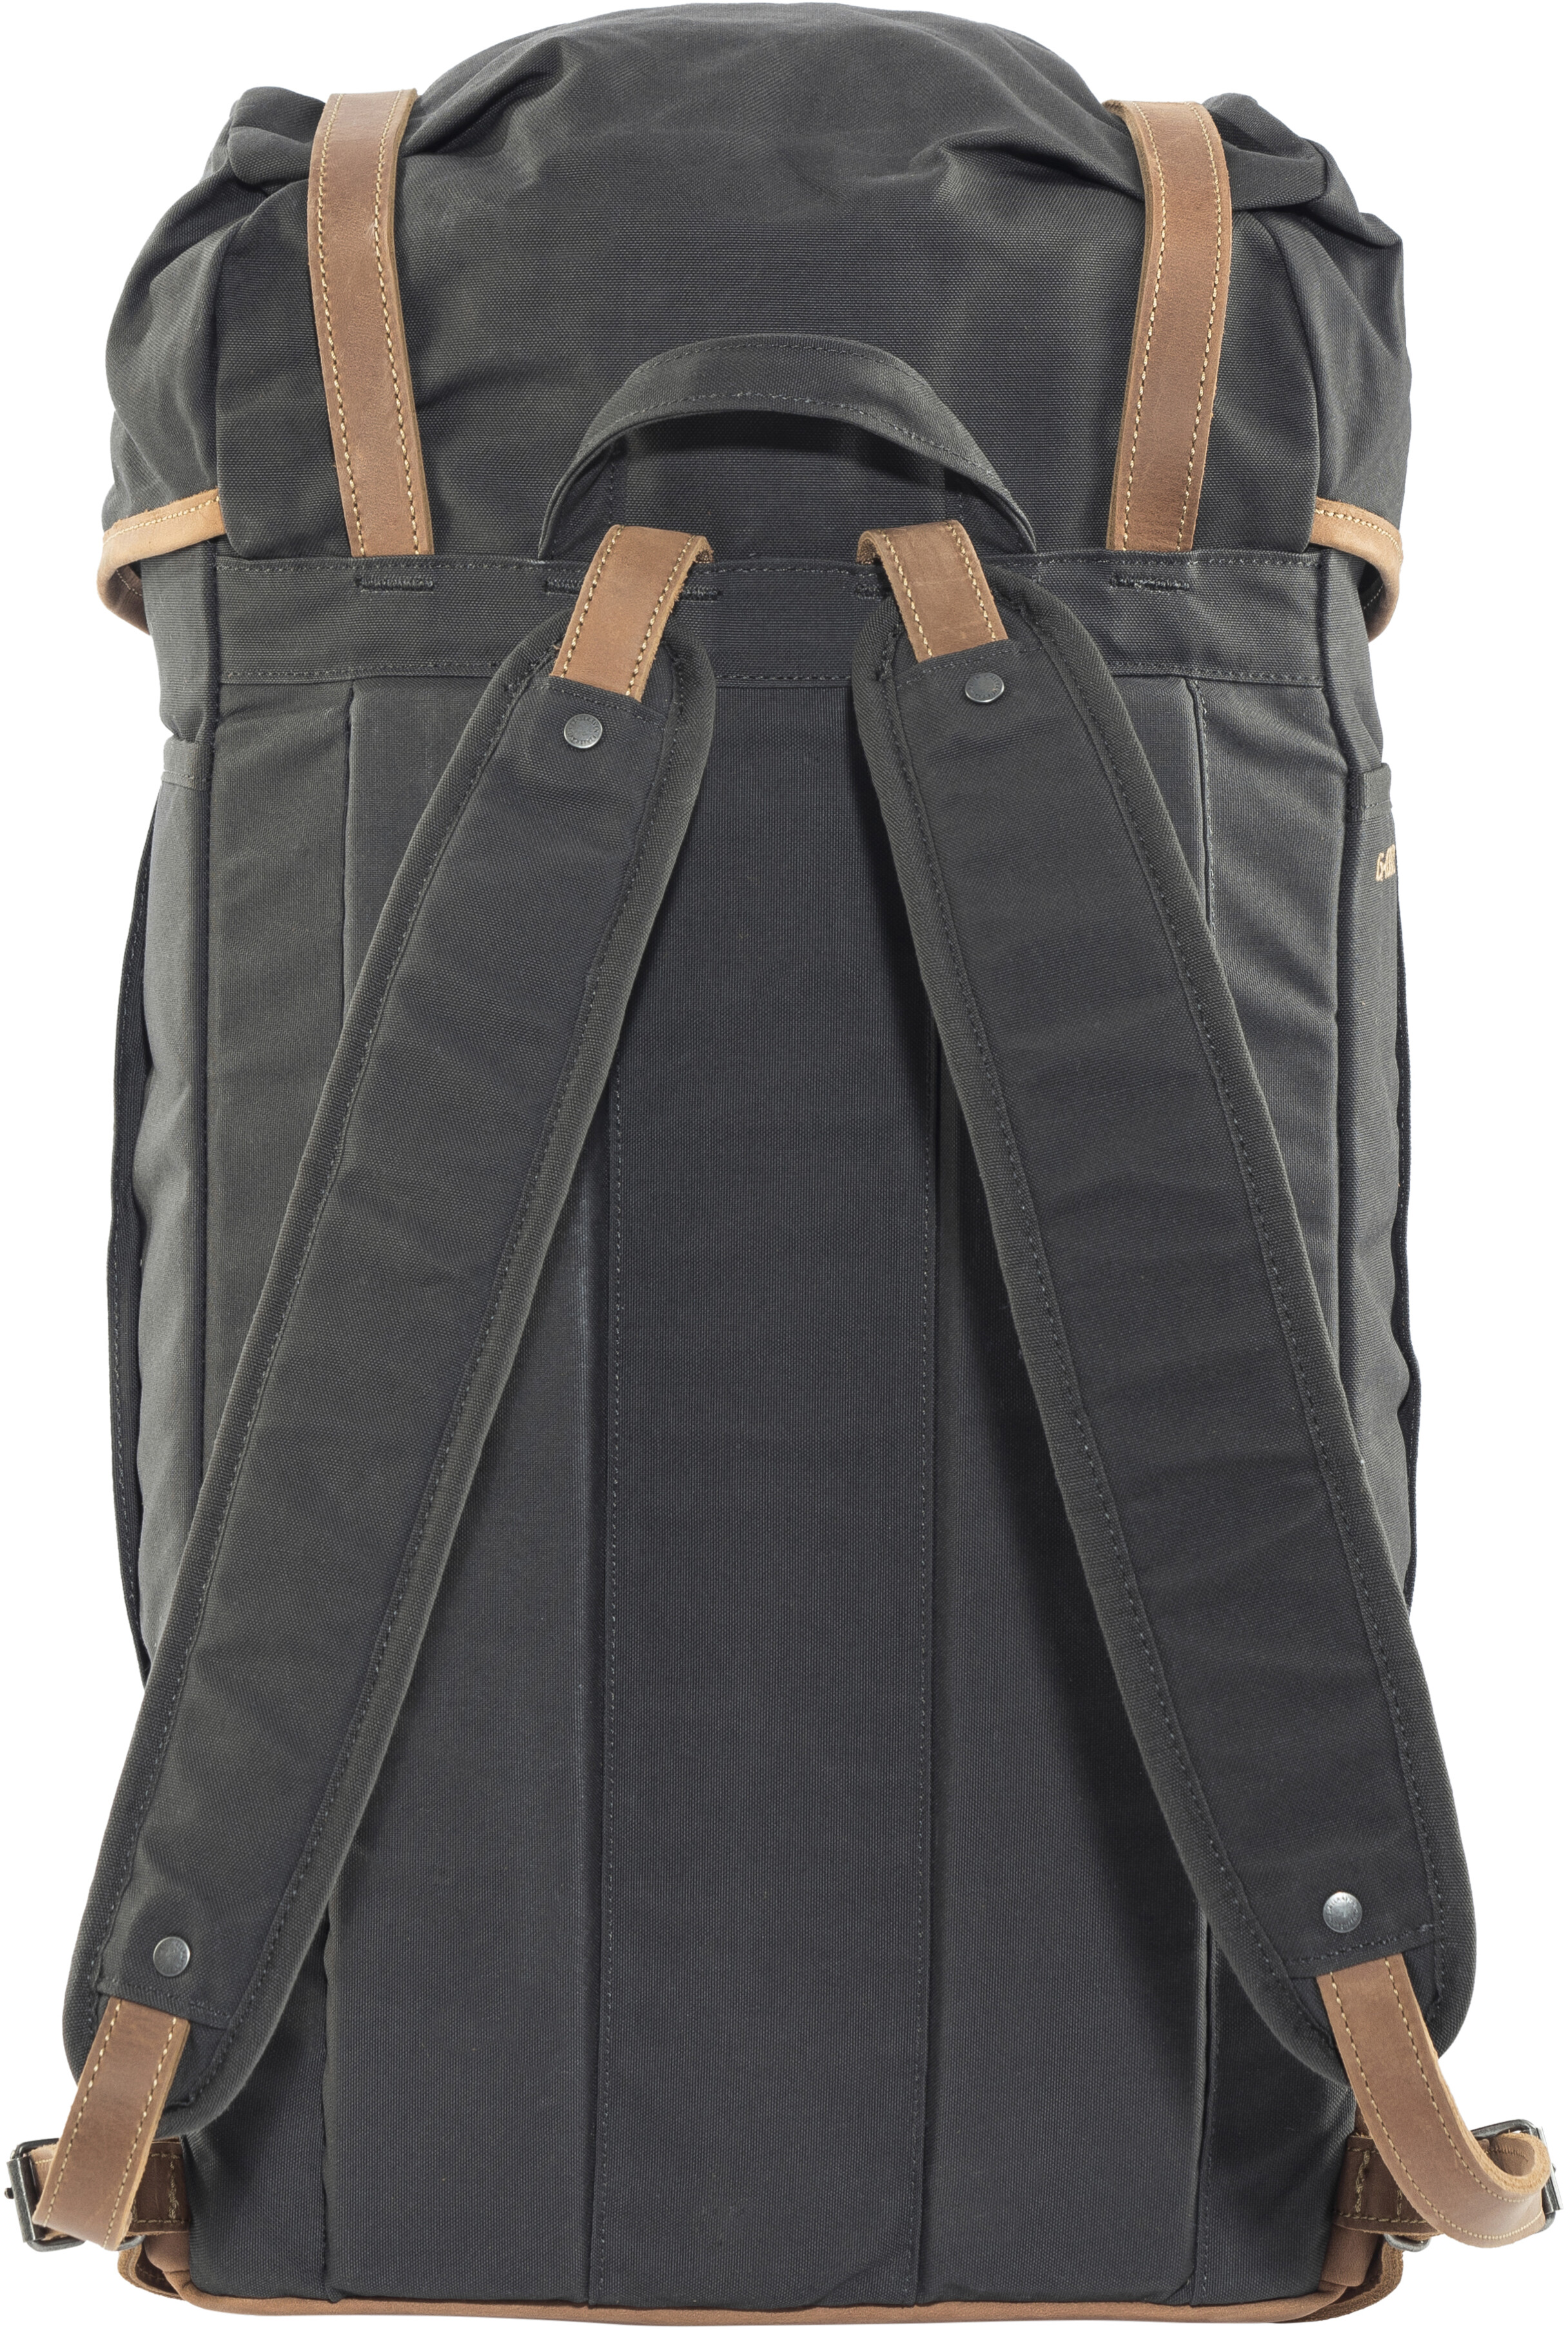 fj llr ven no 21 rucksack large dark grey. Black Bedroom Furniture Sets. Home Design Ideas